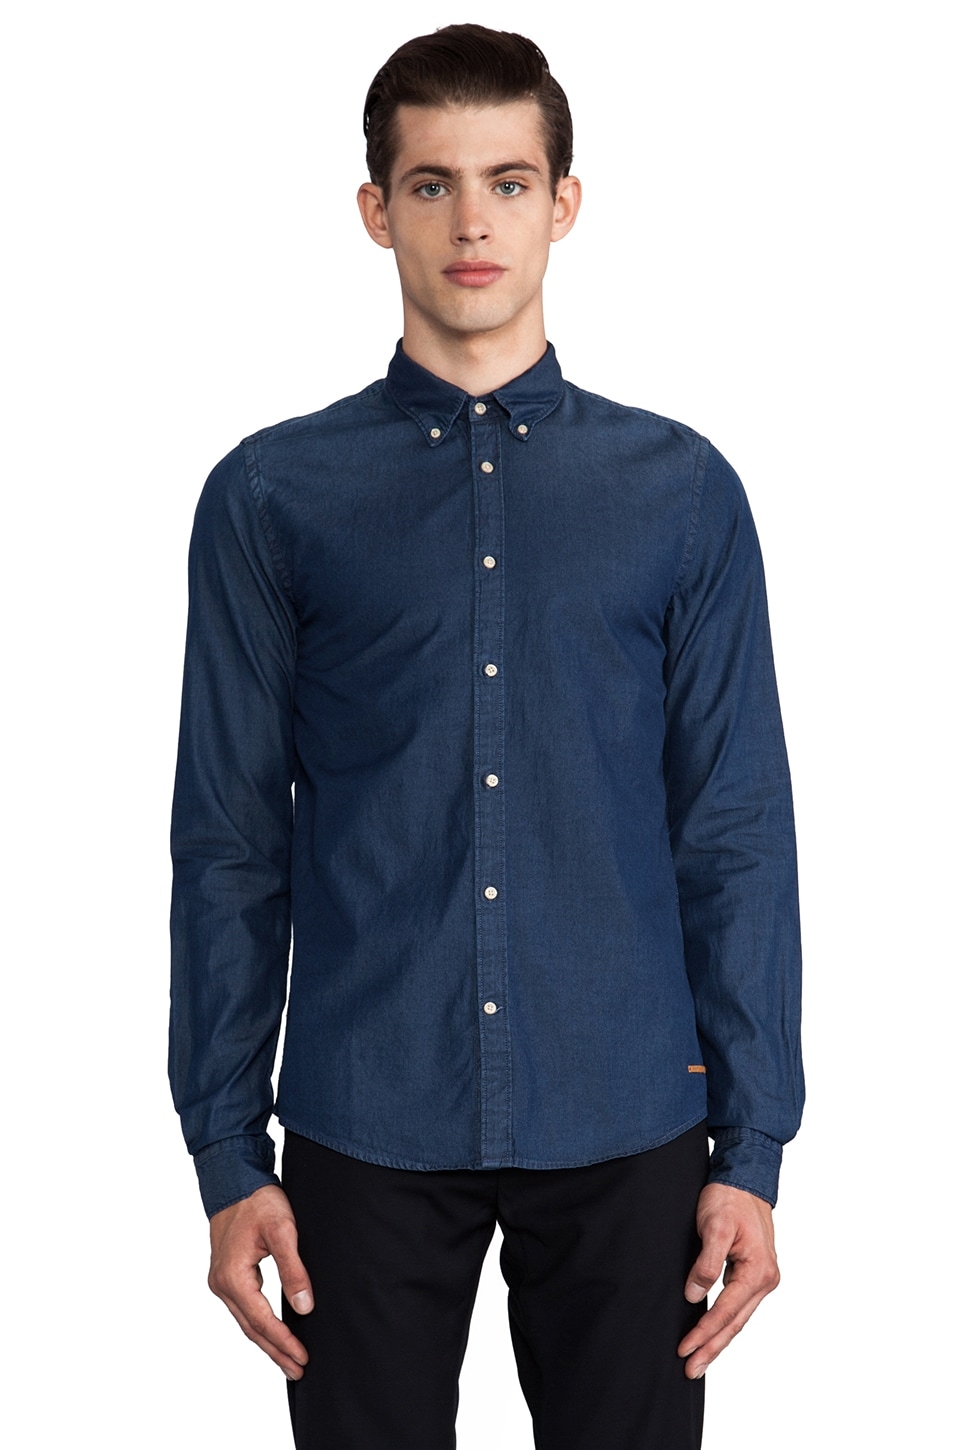 Scotch & Soda Fancy Ikat Shirt in Indigo